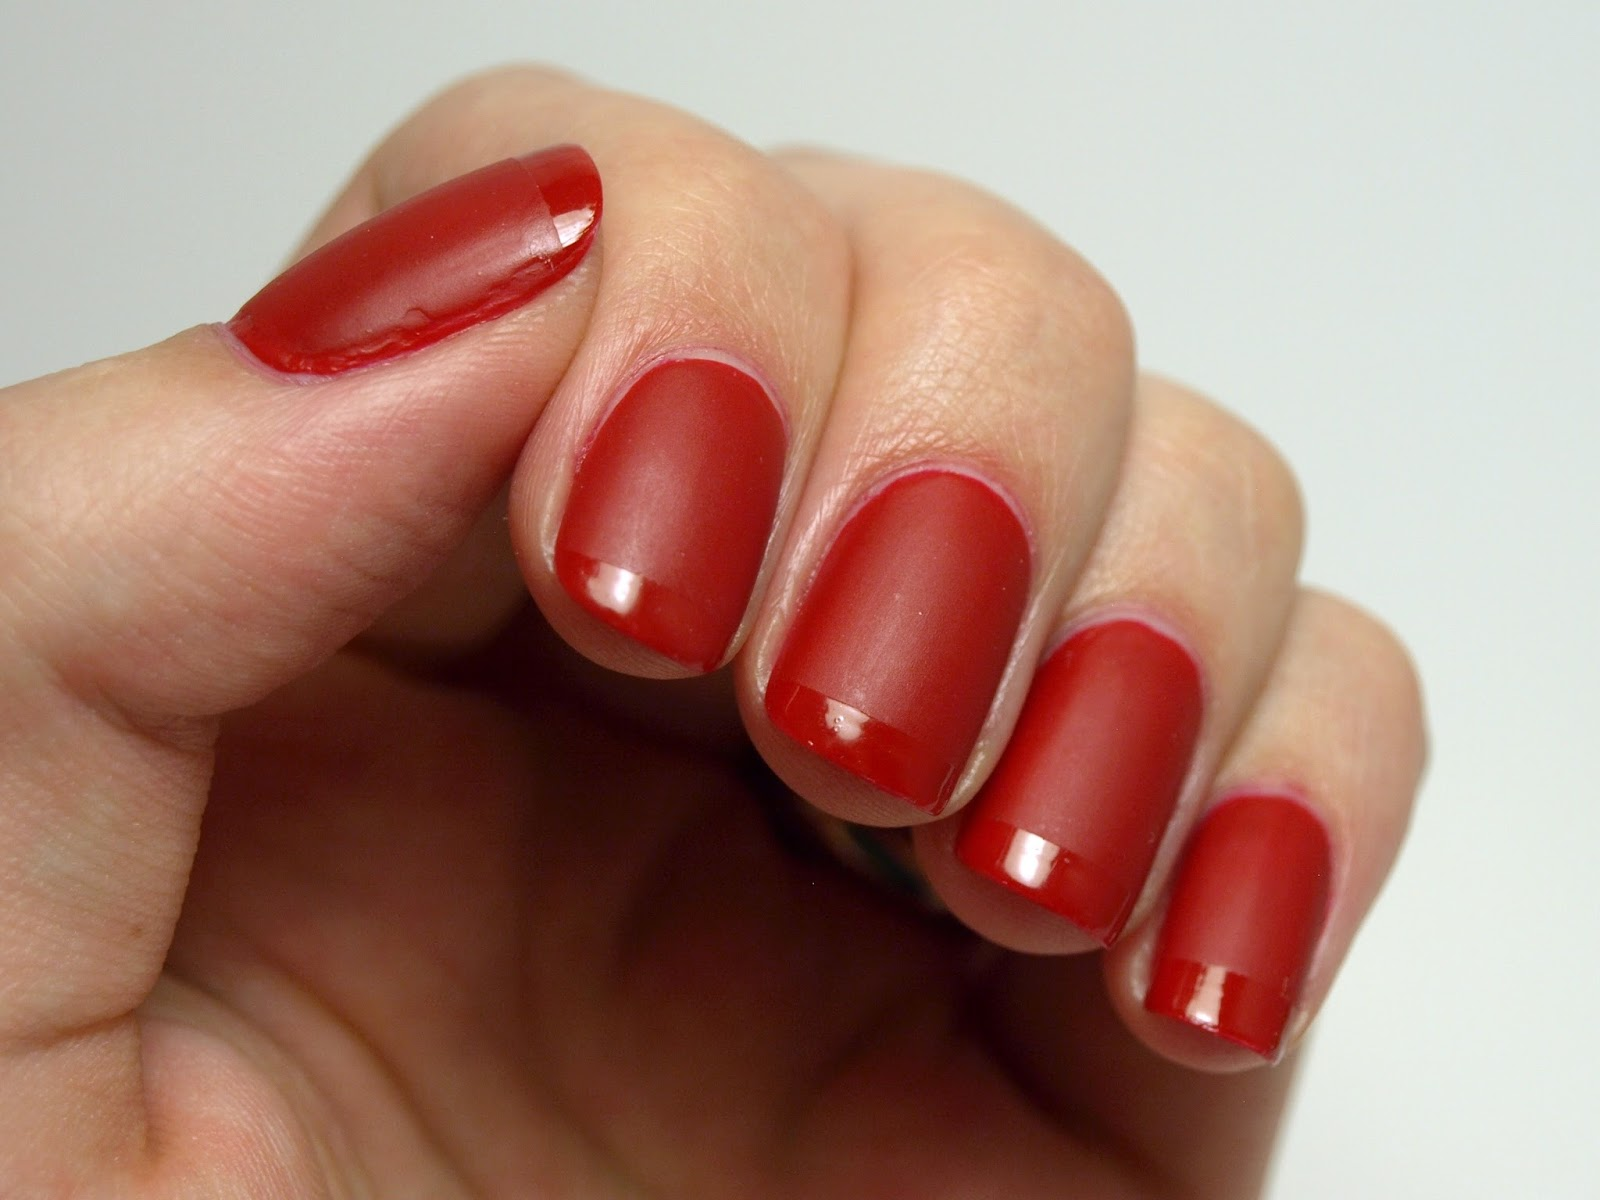 Nail Polish Society: Red Matte and Glossy